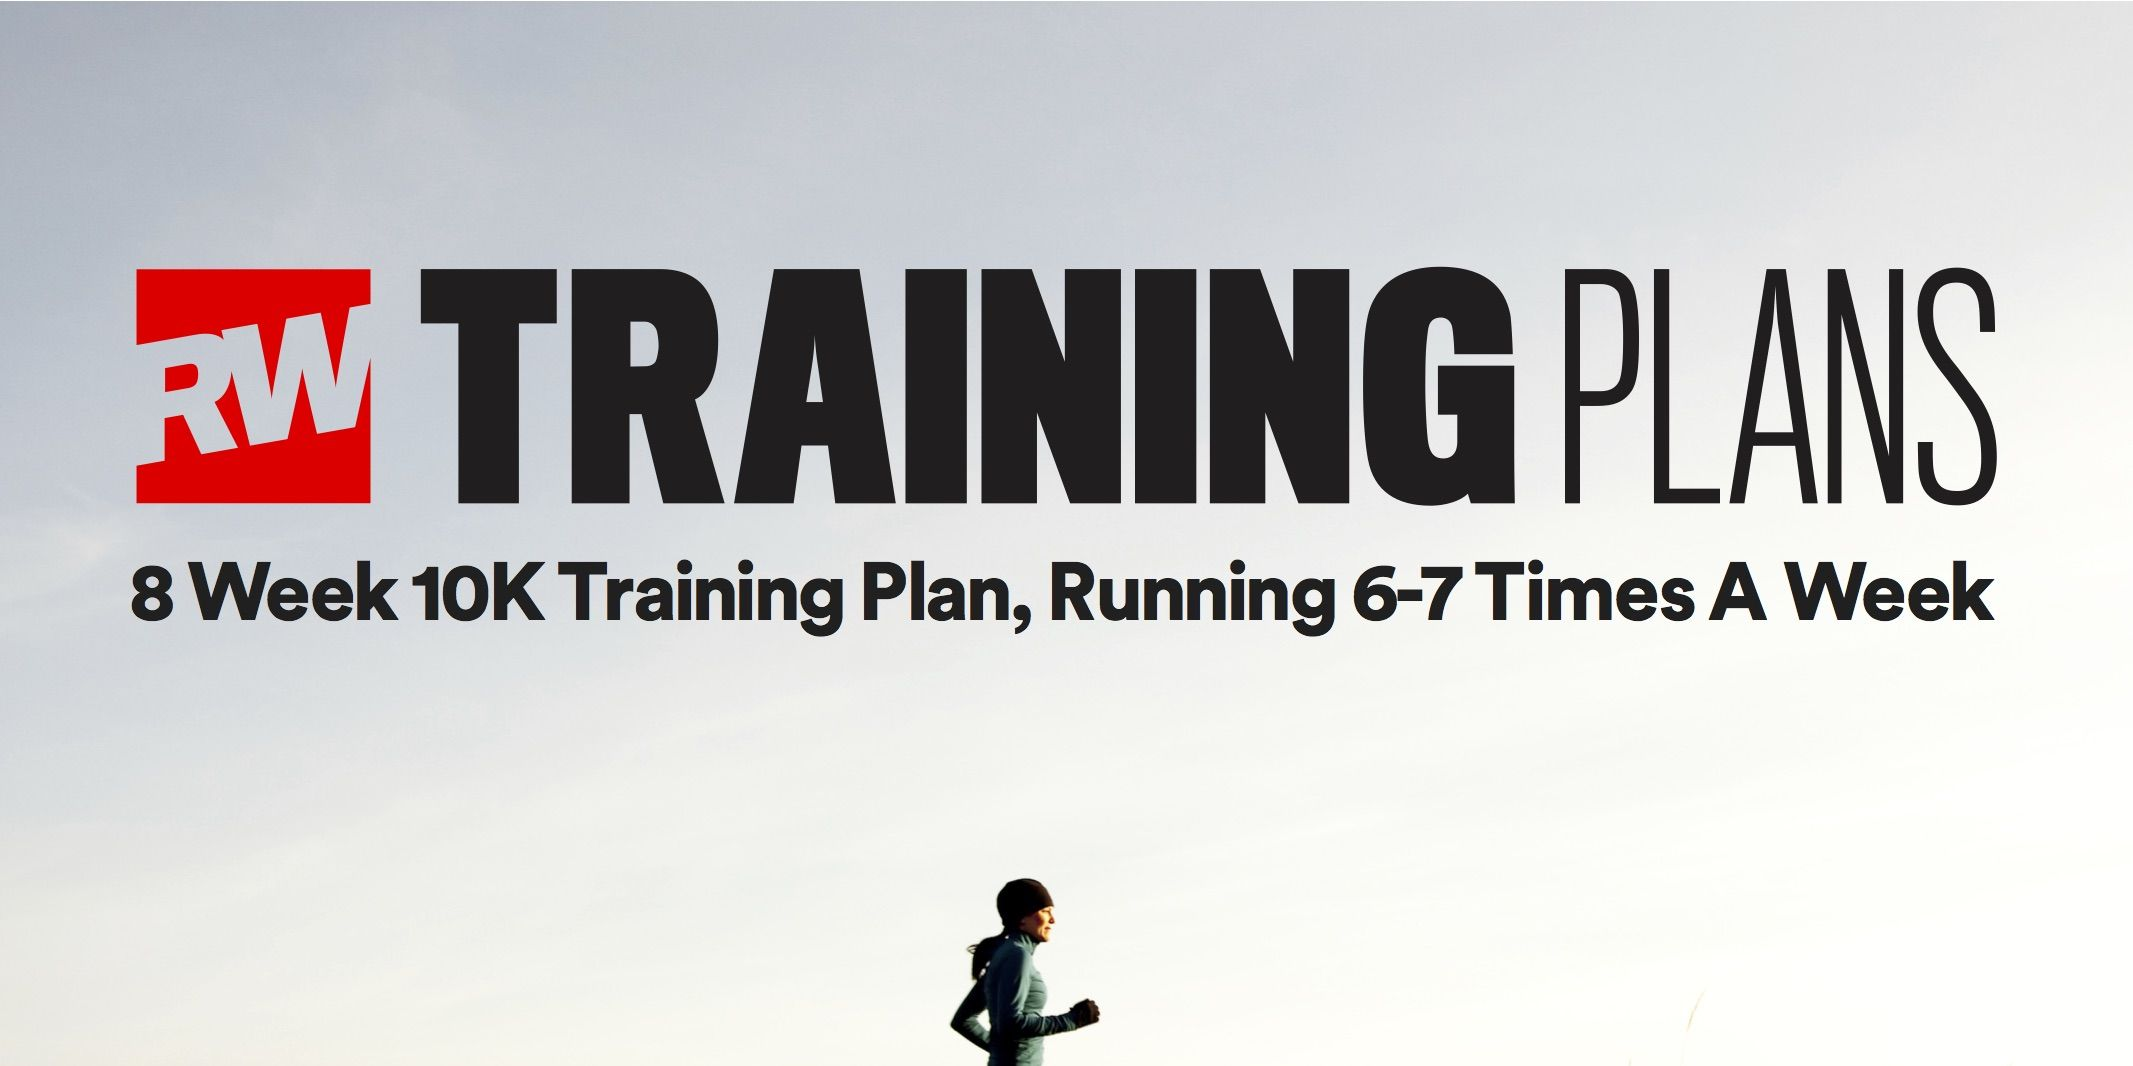 8 week 10K training plan, running 6-7 times a week